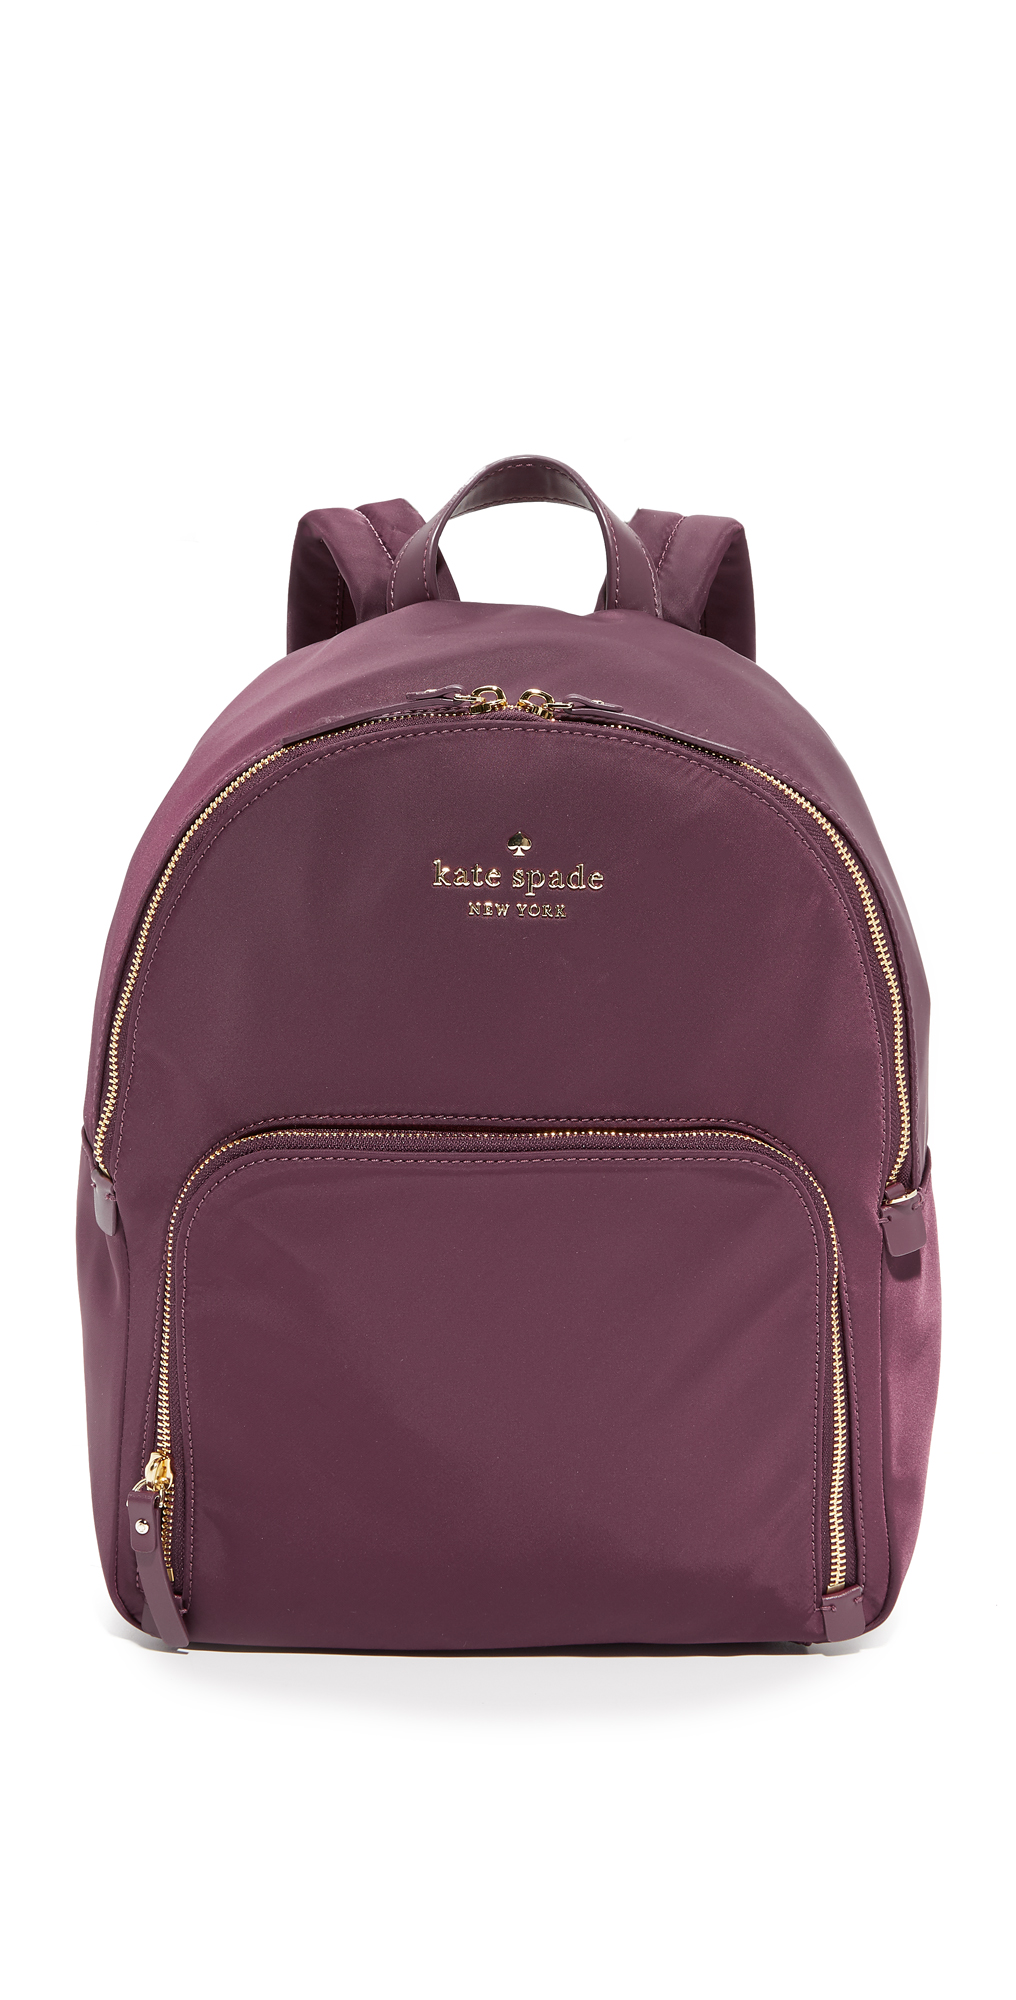 Hartley Backpack Kate Spade New York